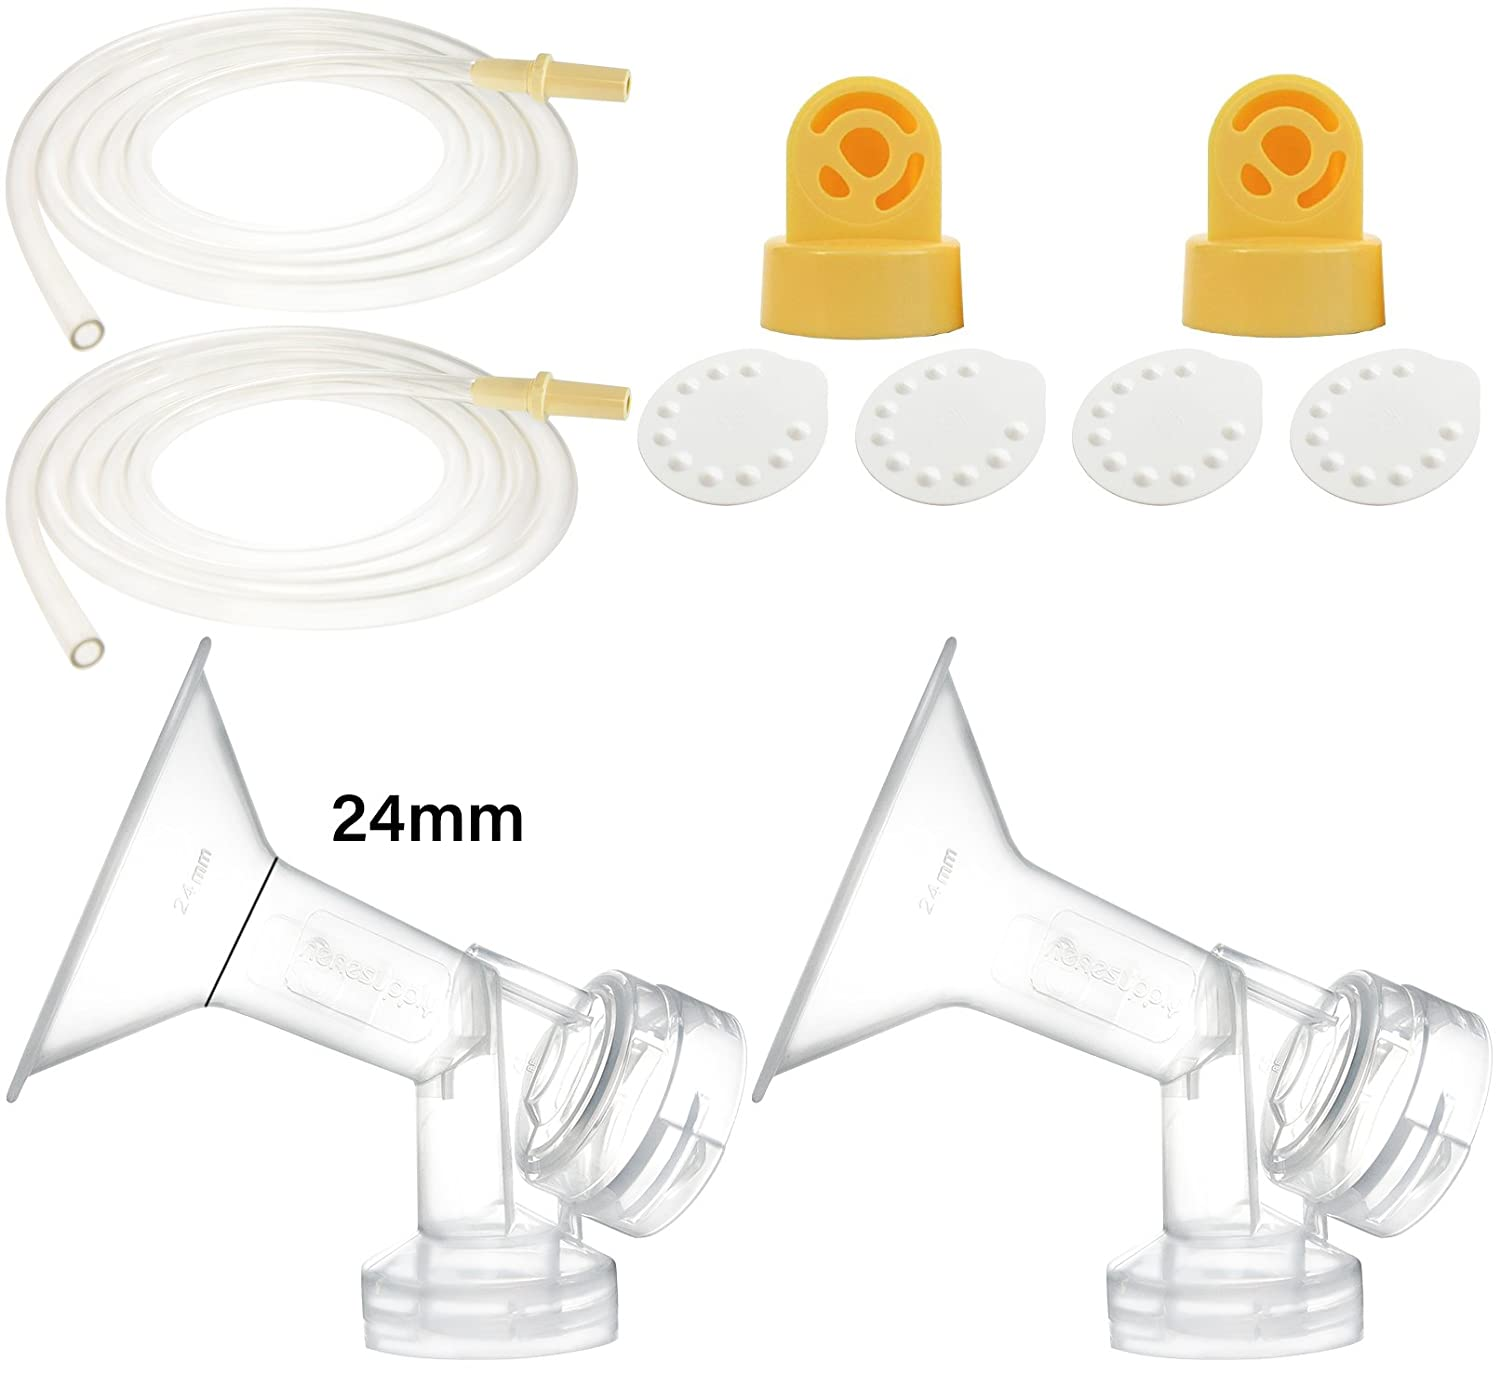 Breast Pump Kit for Medela Pump In Style Advanced Breastpump. Include 2 Breastshields (Replace Medela Personalfit 24mm), 2 Valves, 4 Membranes, and 2 Replacement Tubing for Medela released after July 2006. Replace Medela breastshield, valve, membrane Nenes